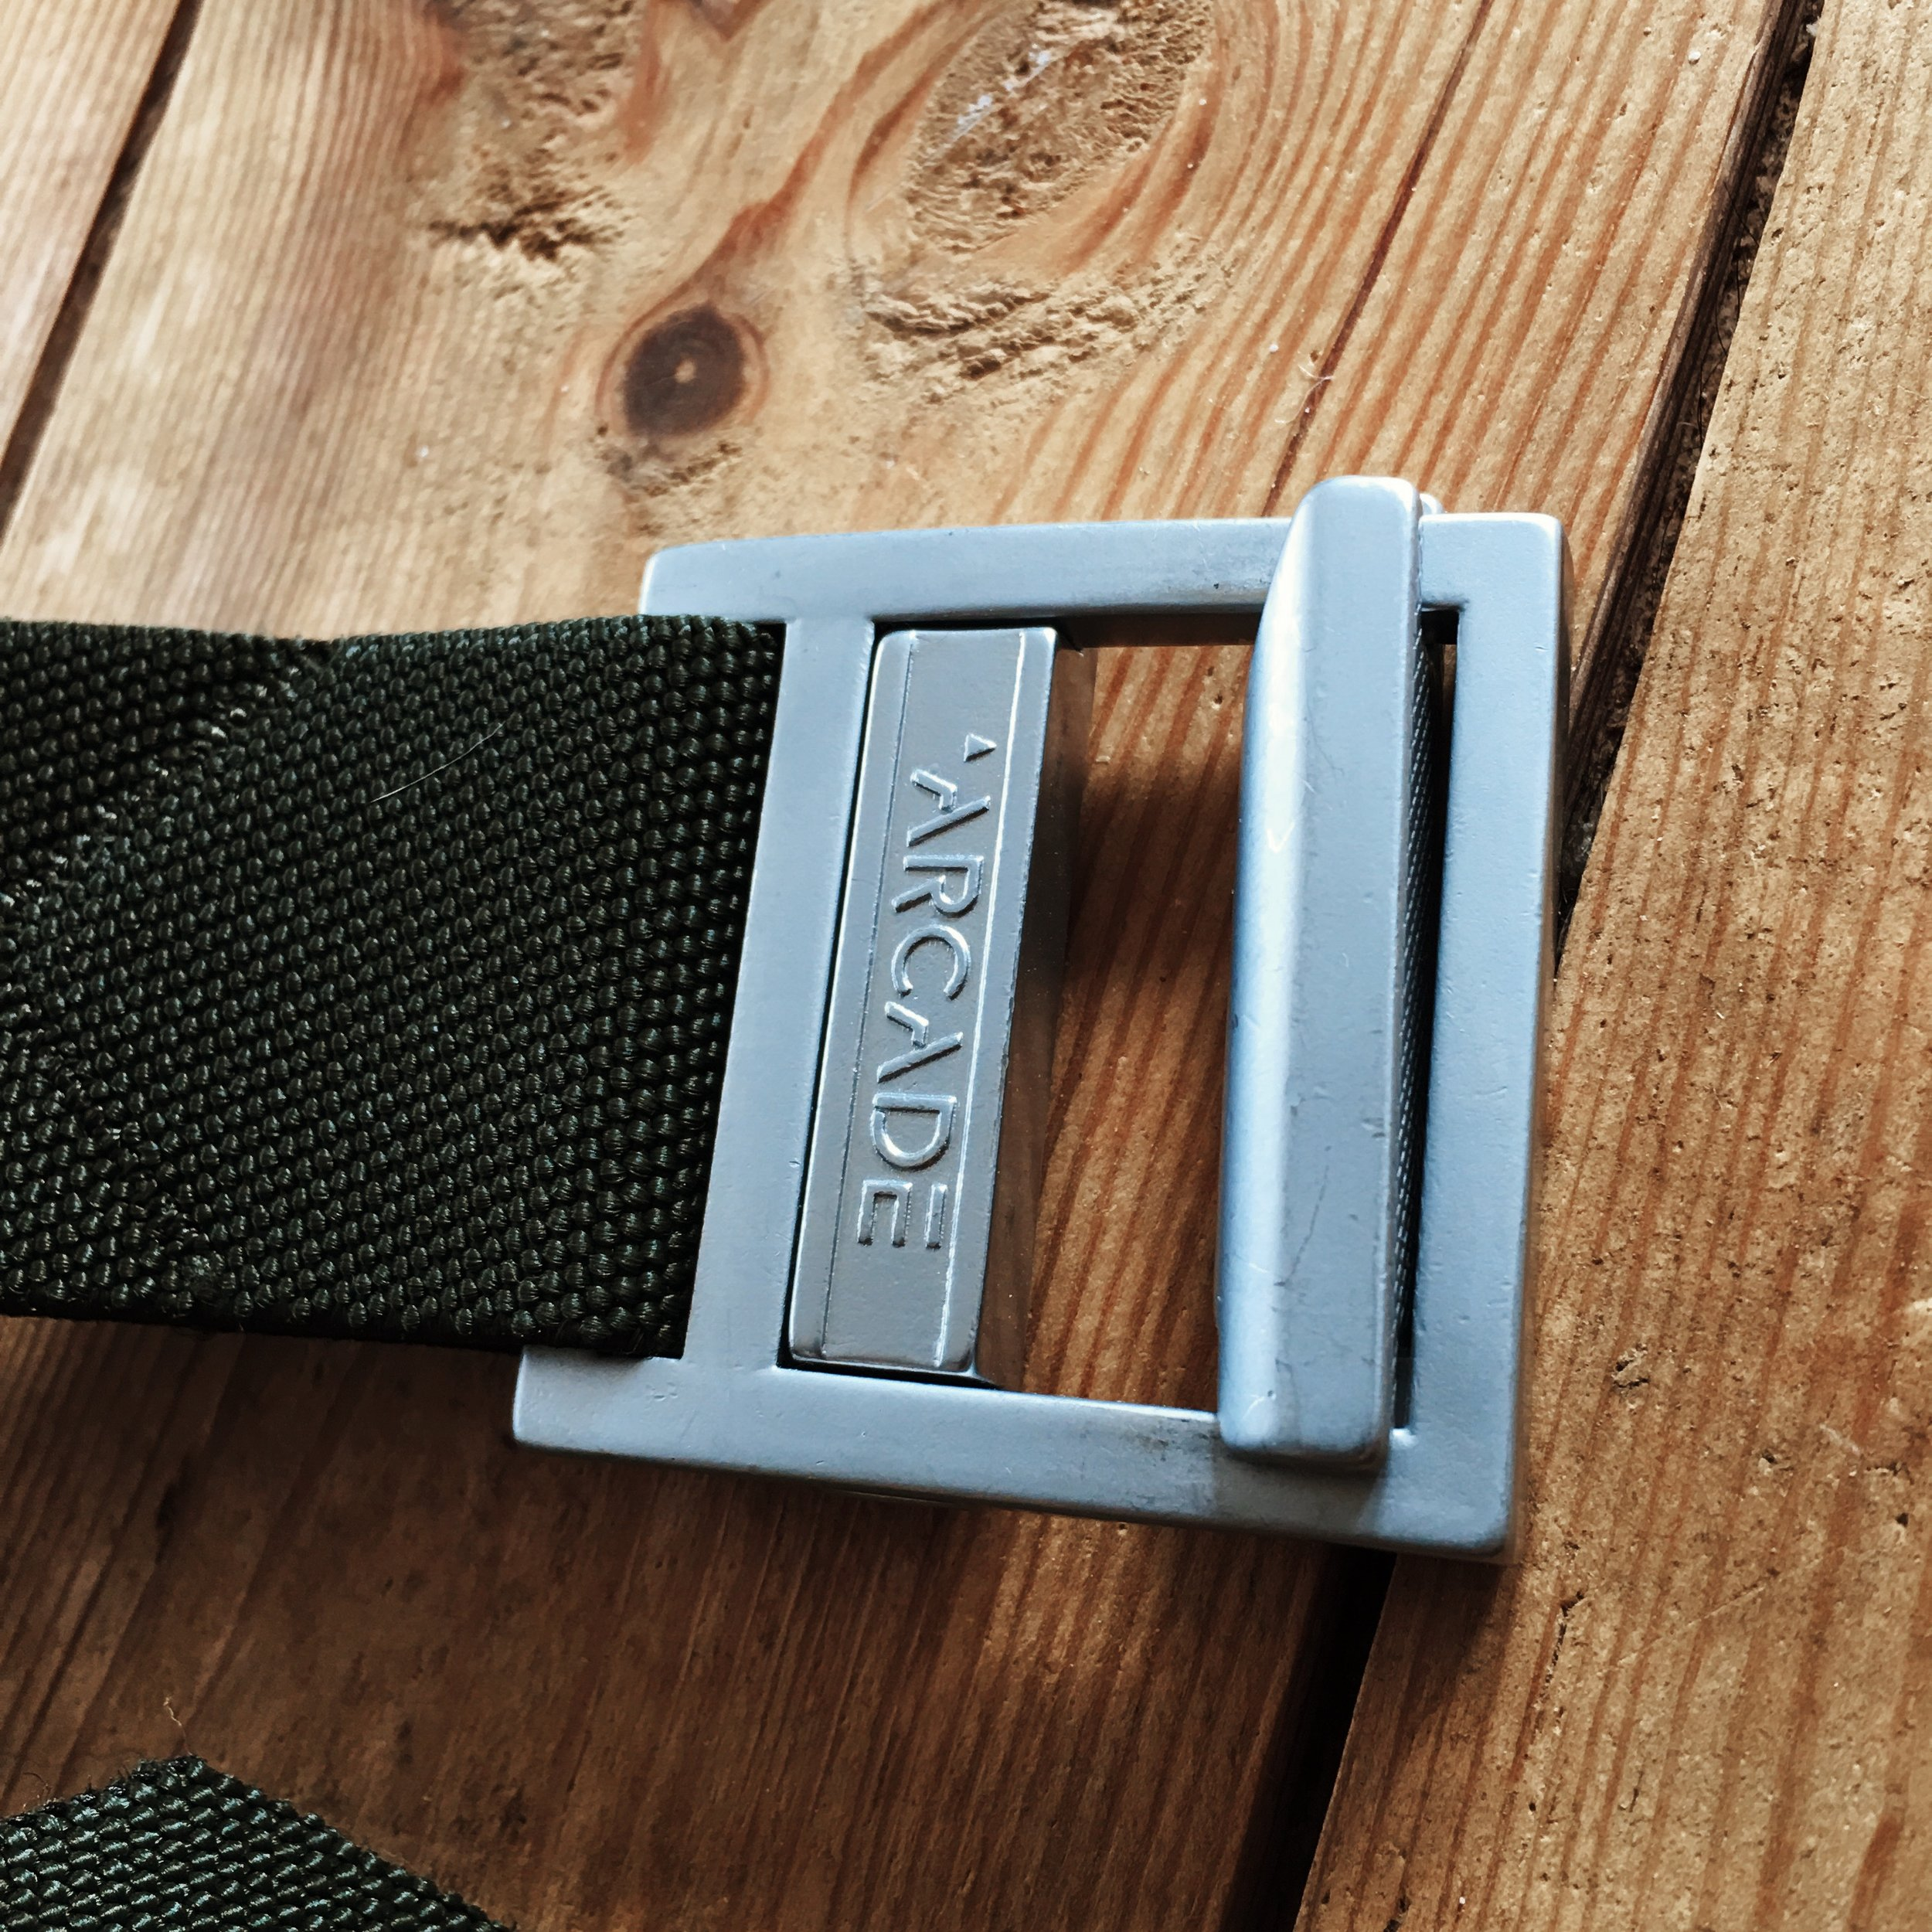 Easy to use ratchet buckle